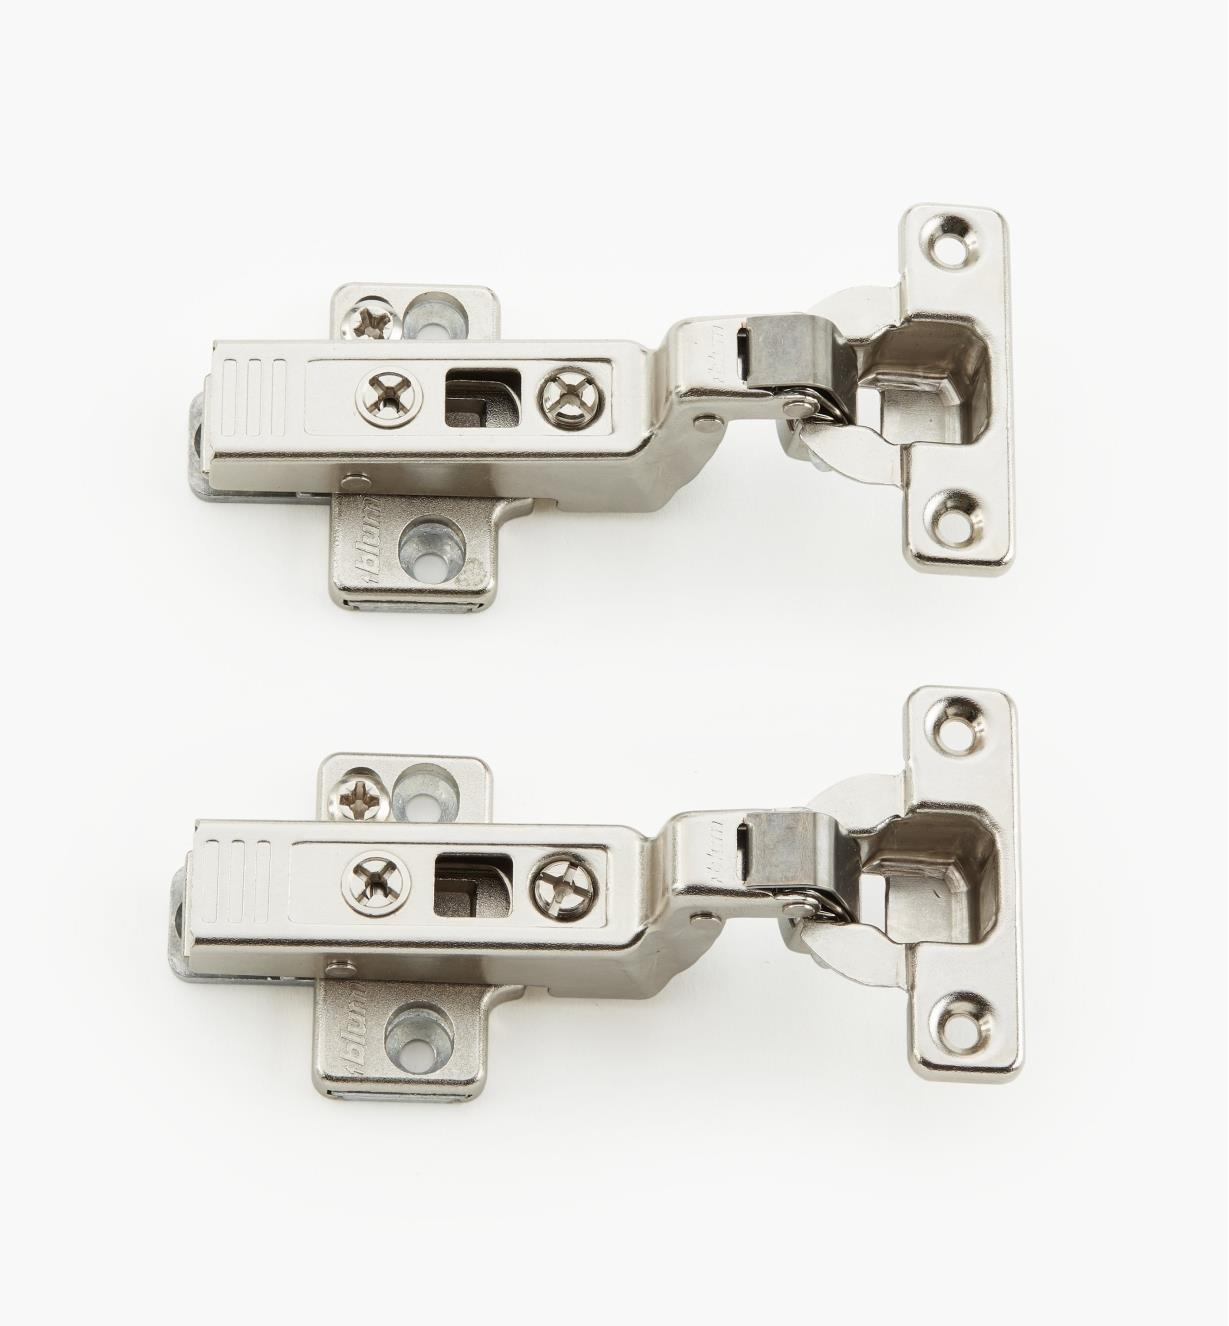 00B1404 - 94° Inset Clip Mini Hinges, pr.